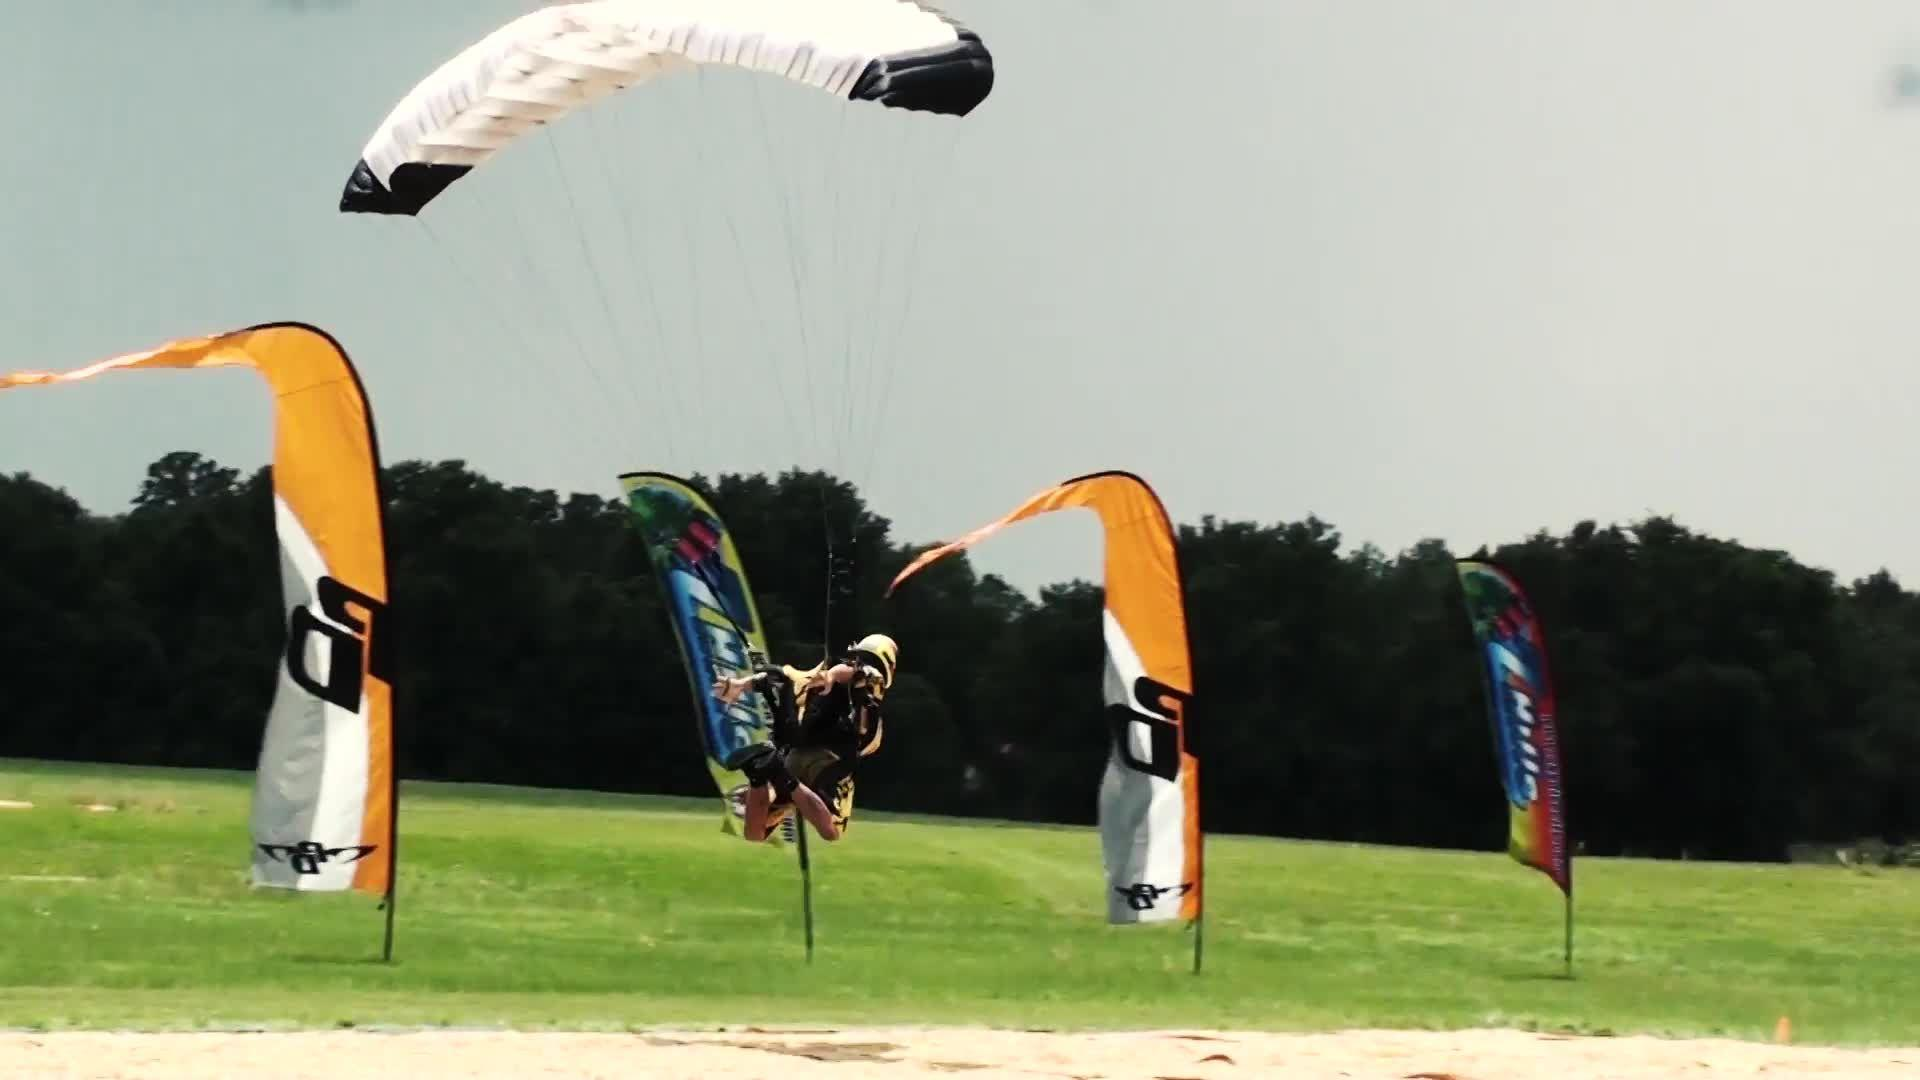 Insane 'Swooping' Skydiving Makes Your Tandem Jump Look Lame